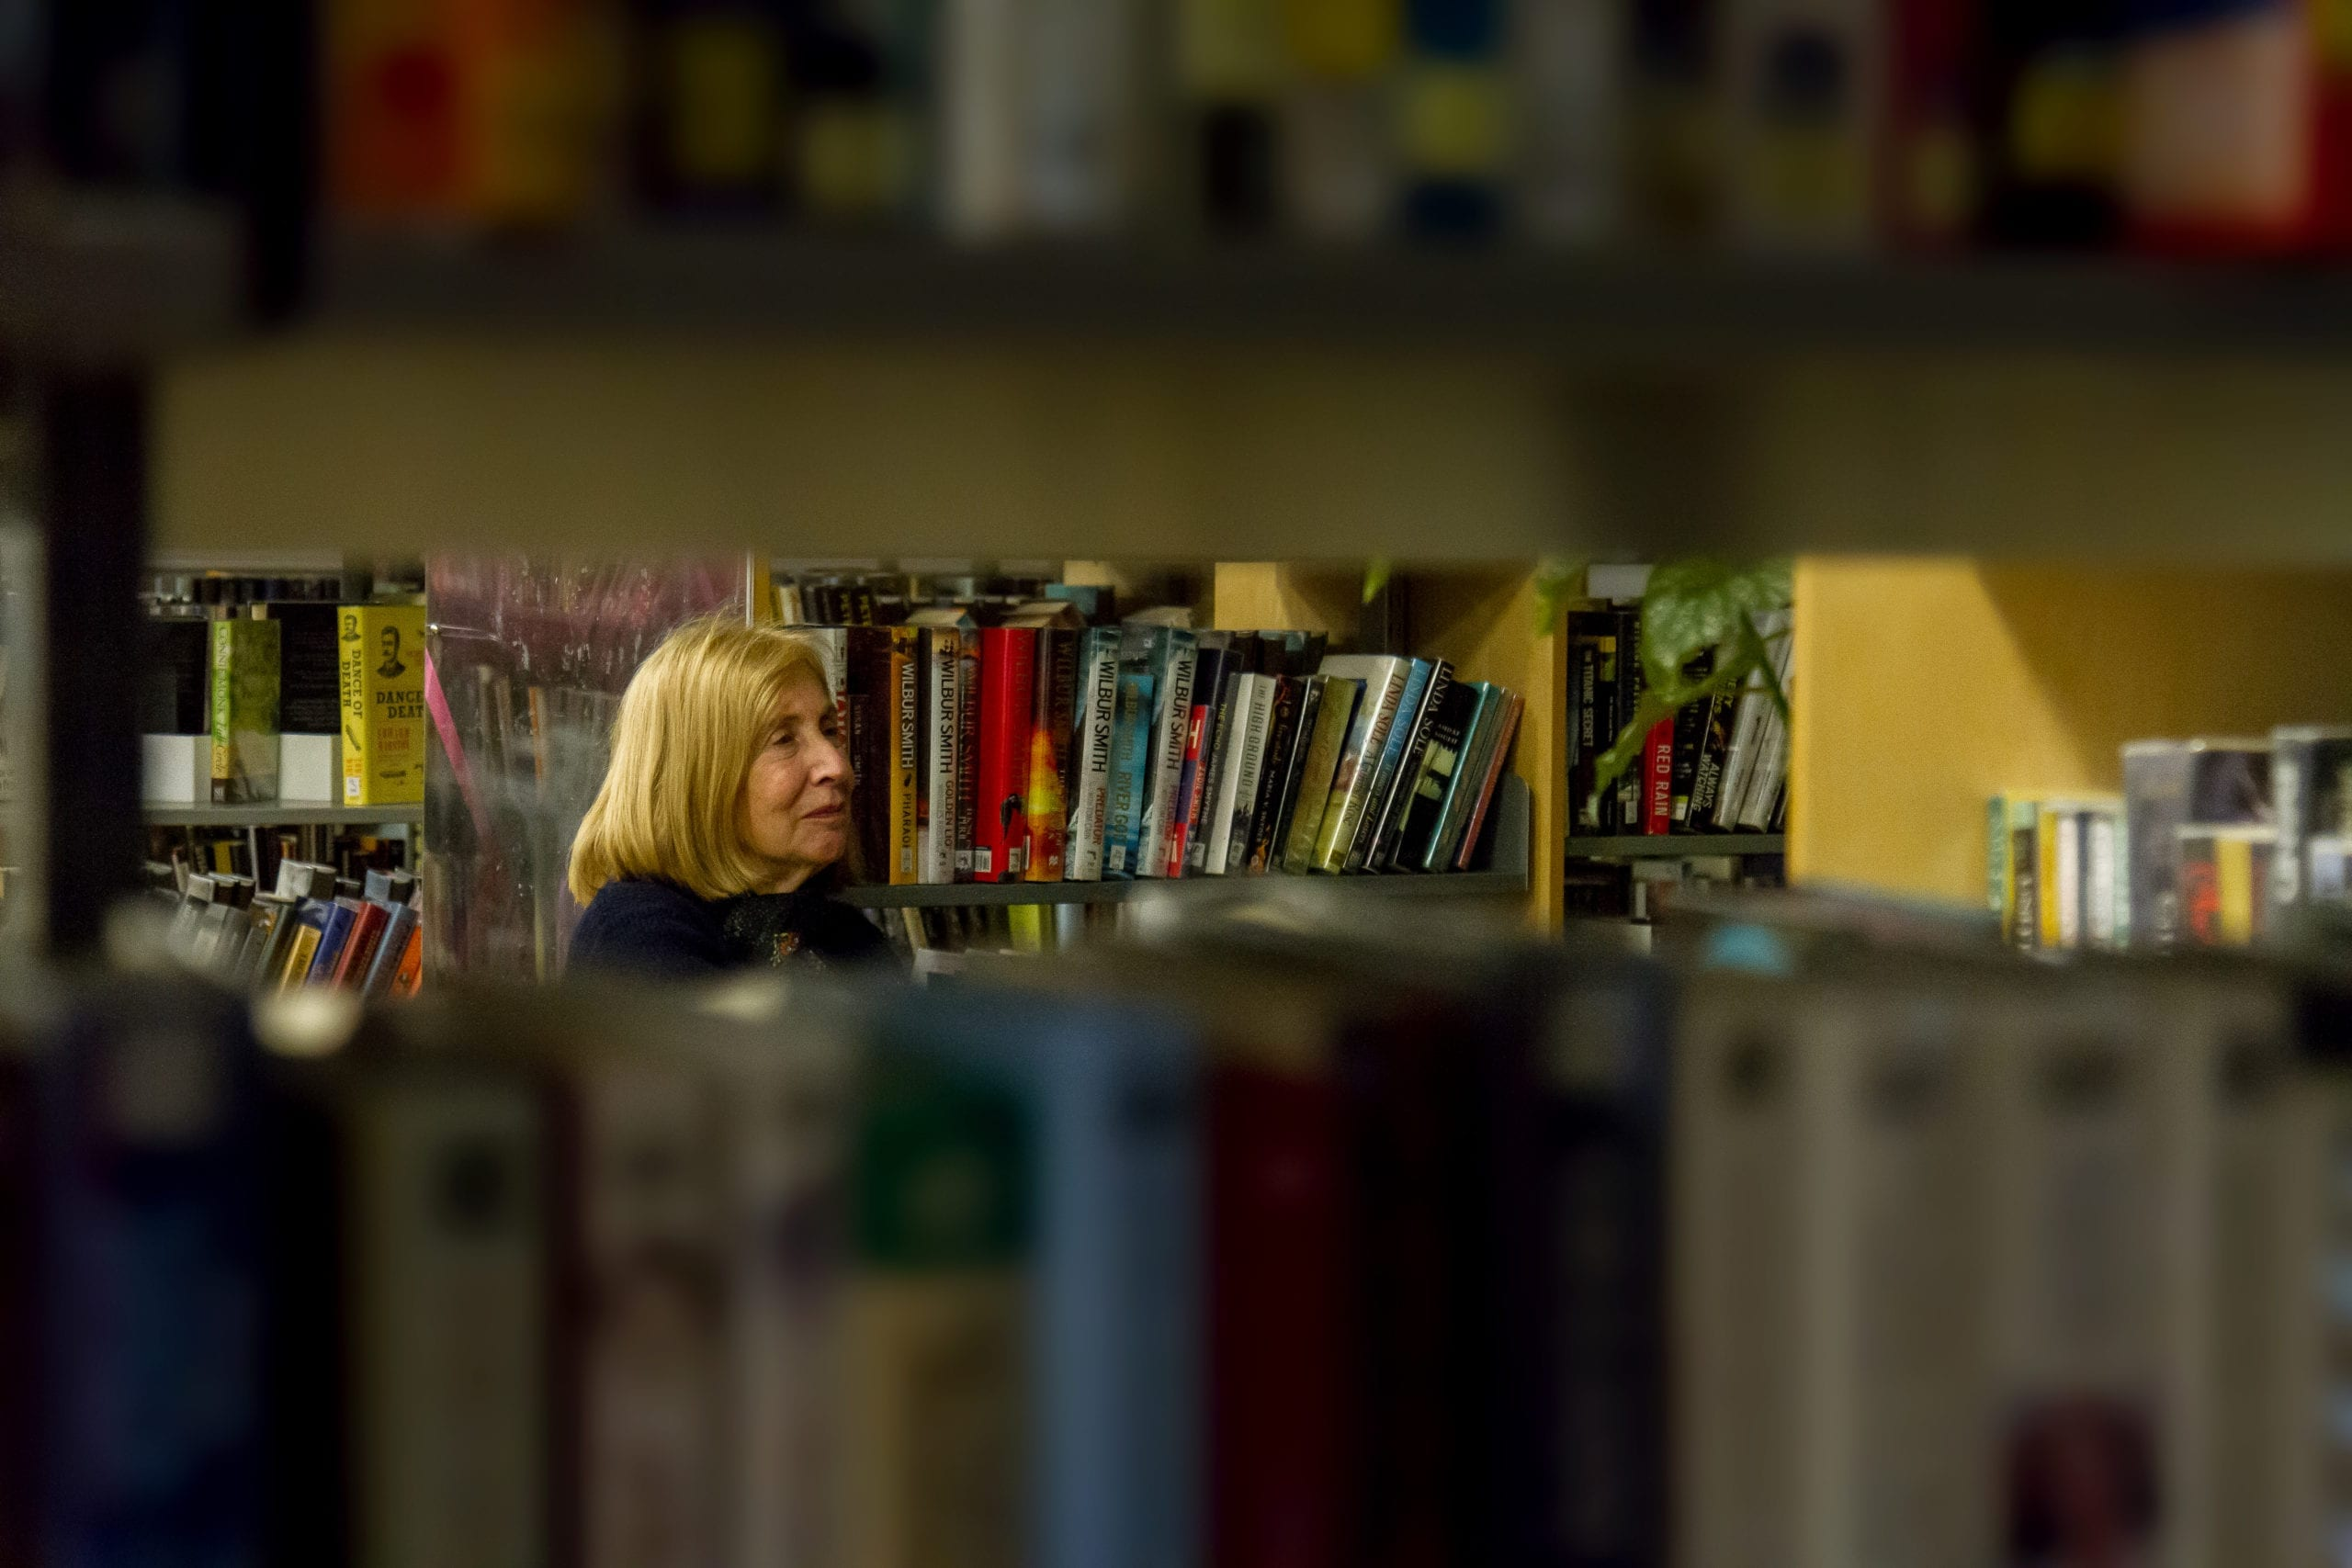 A photo taken of a woman through a shelf of books in a library